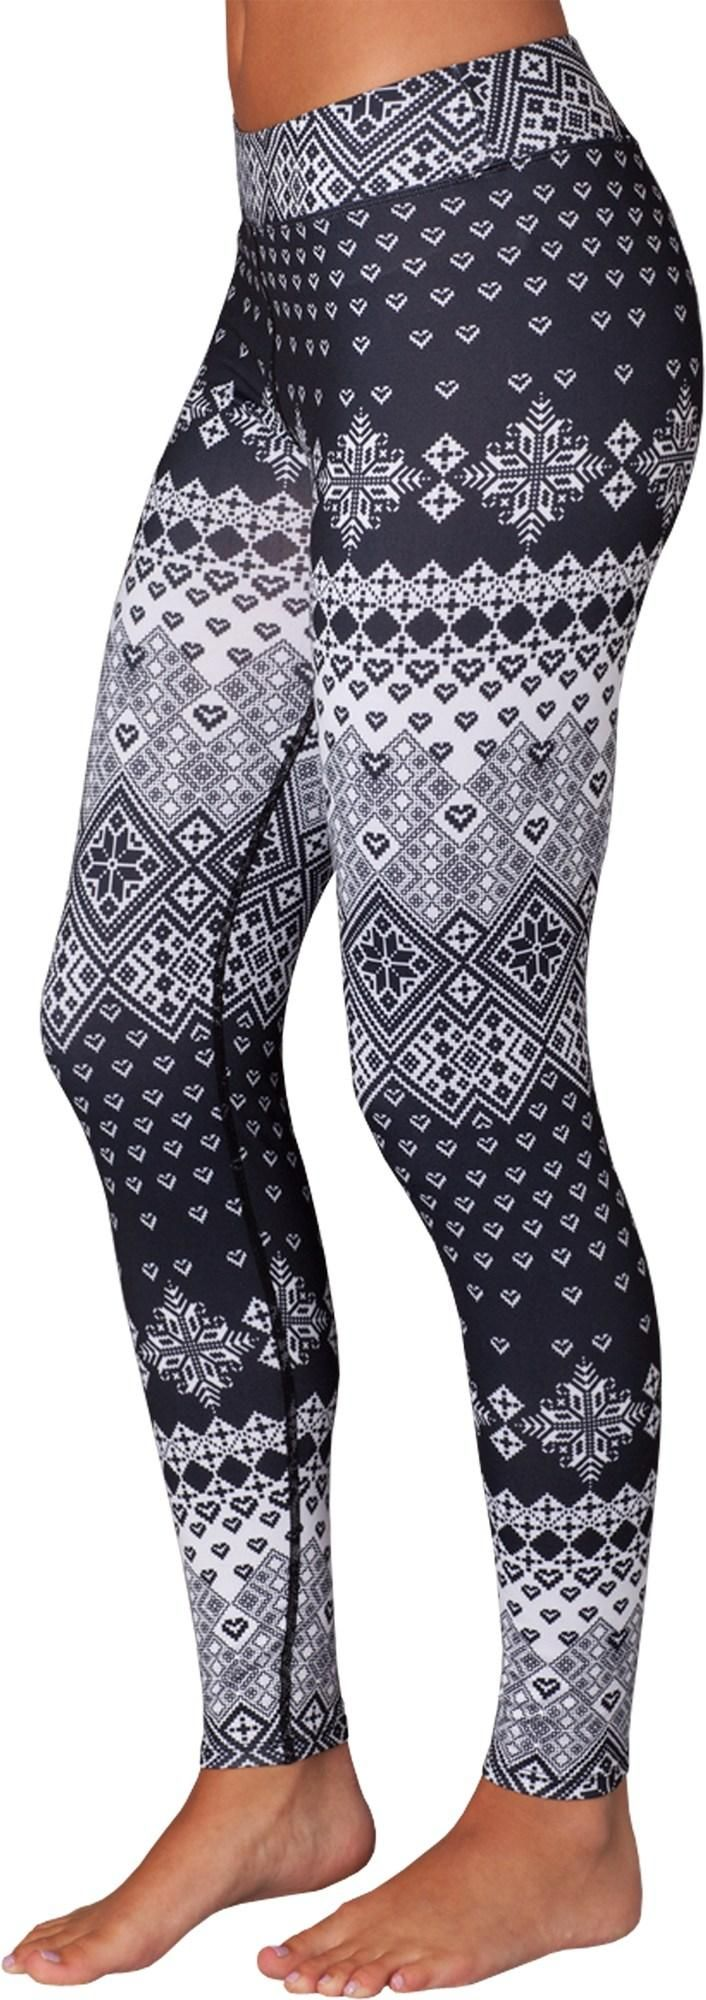 The women's Snow Angel Slimline Flatter-Fit long underwear leggings keep you warm in the cold with moisture-wicking fabric.